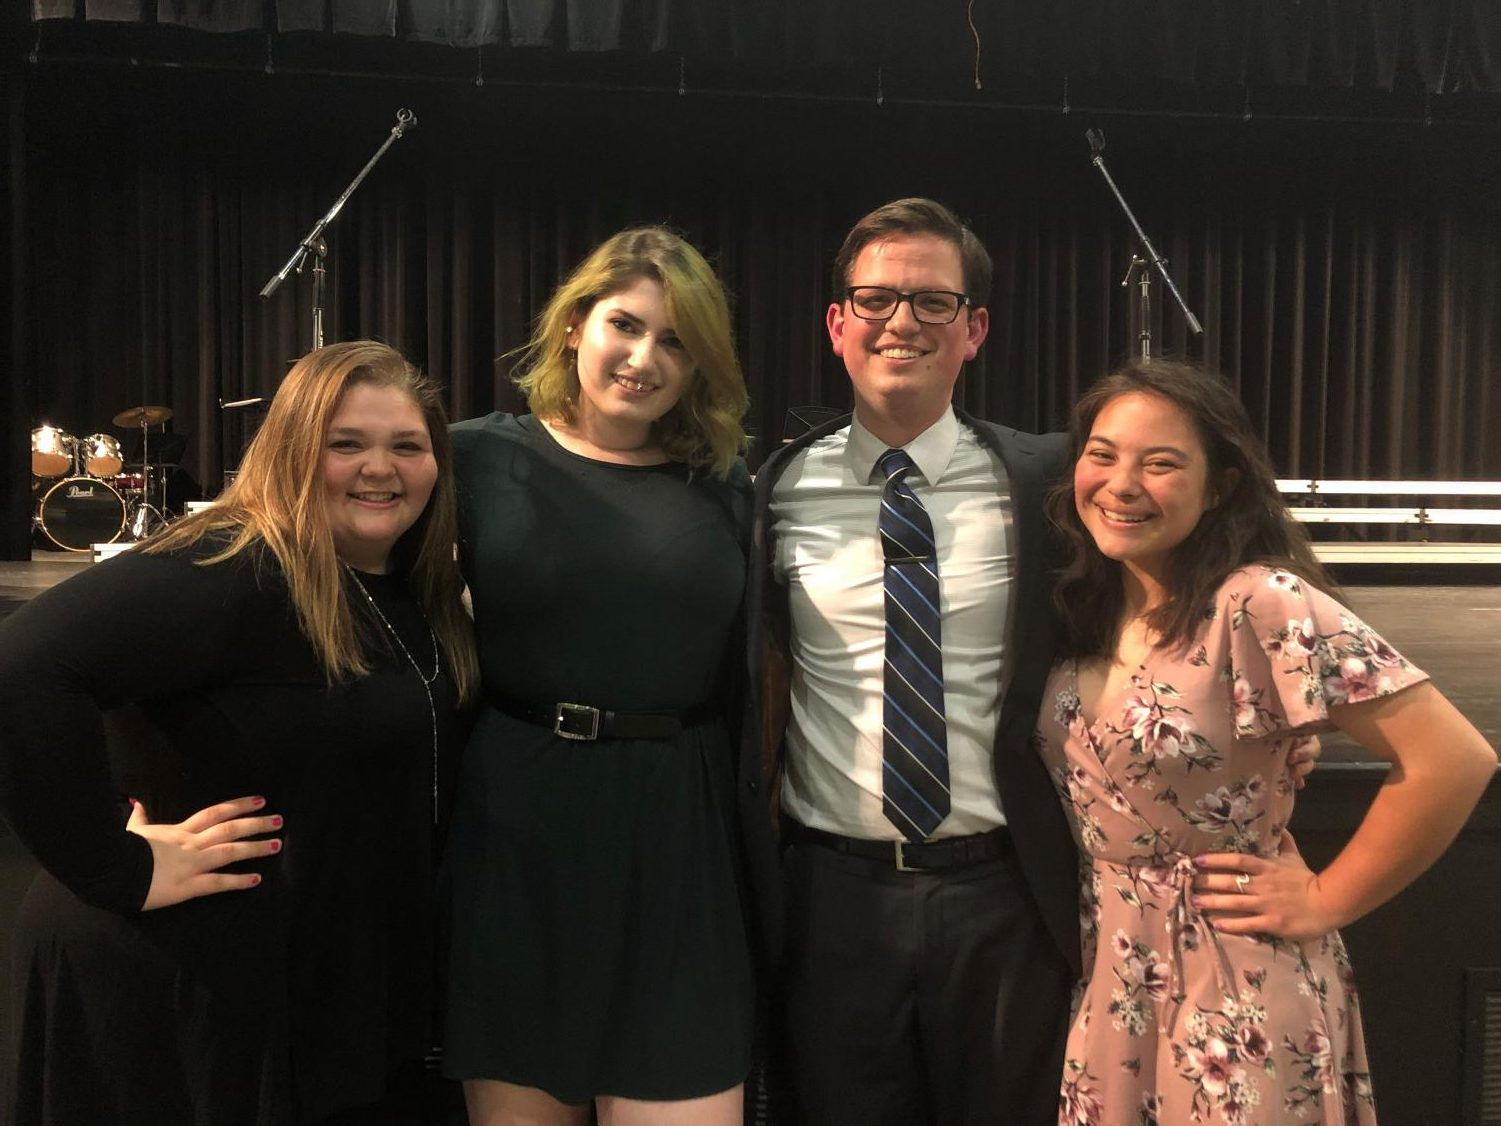 Seniors Katelyn Korver, Shea Page, and Liz Corpus enjoy a final moment with choir director Brian Fancher after the show.